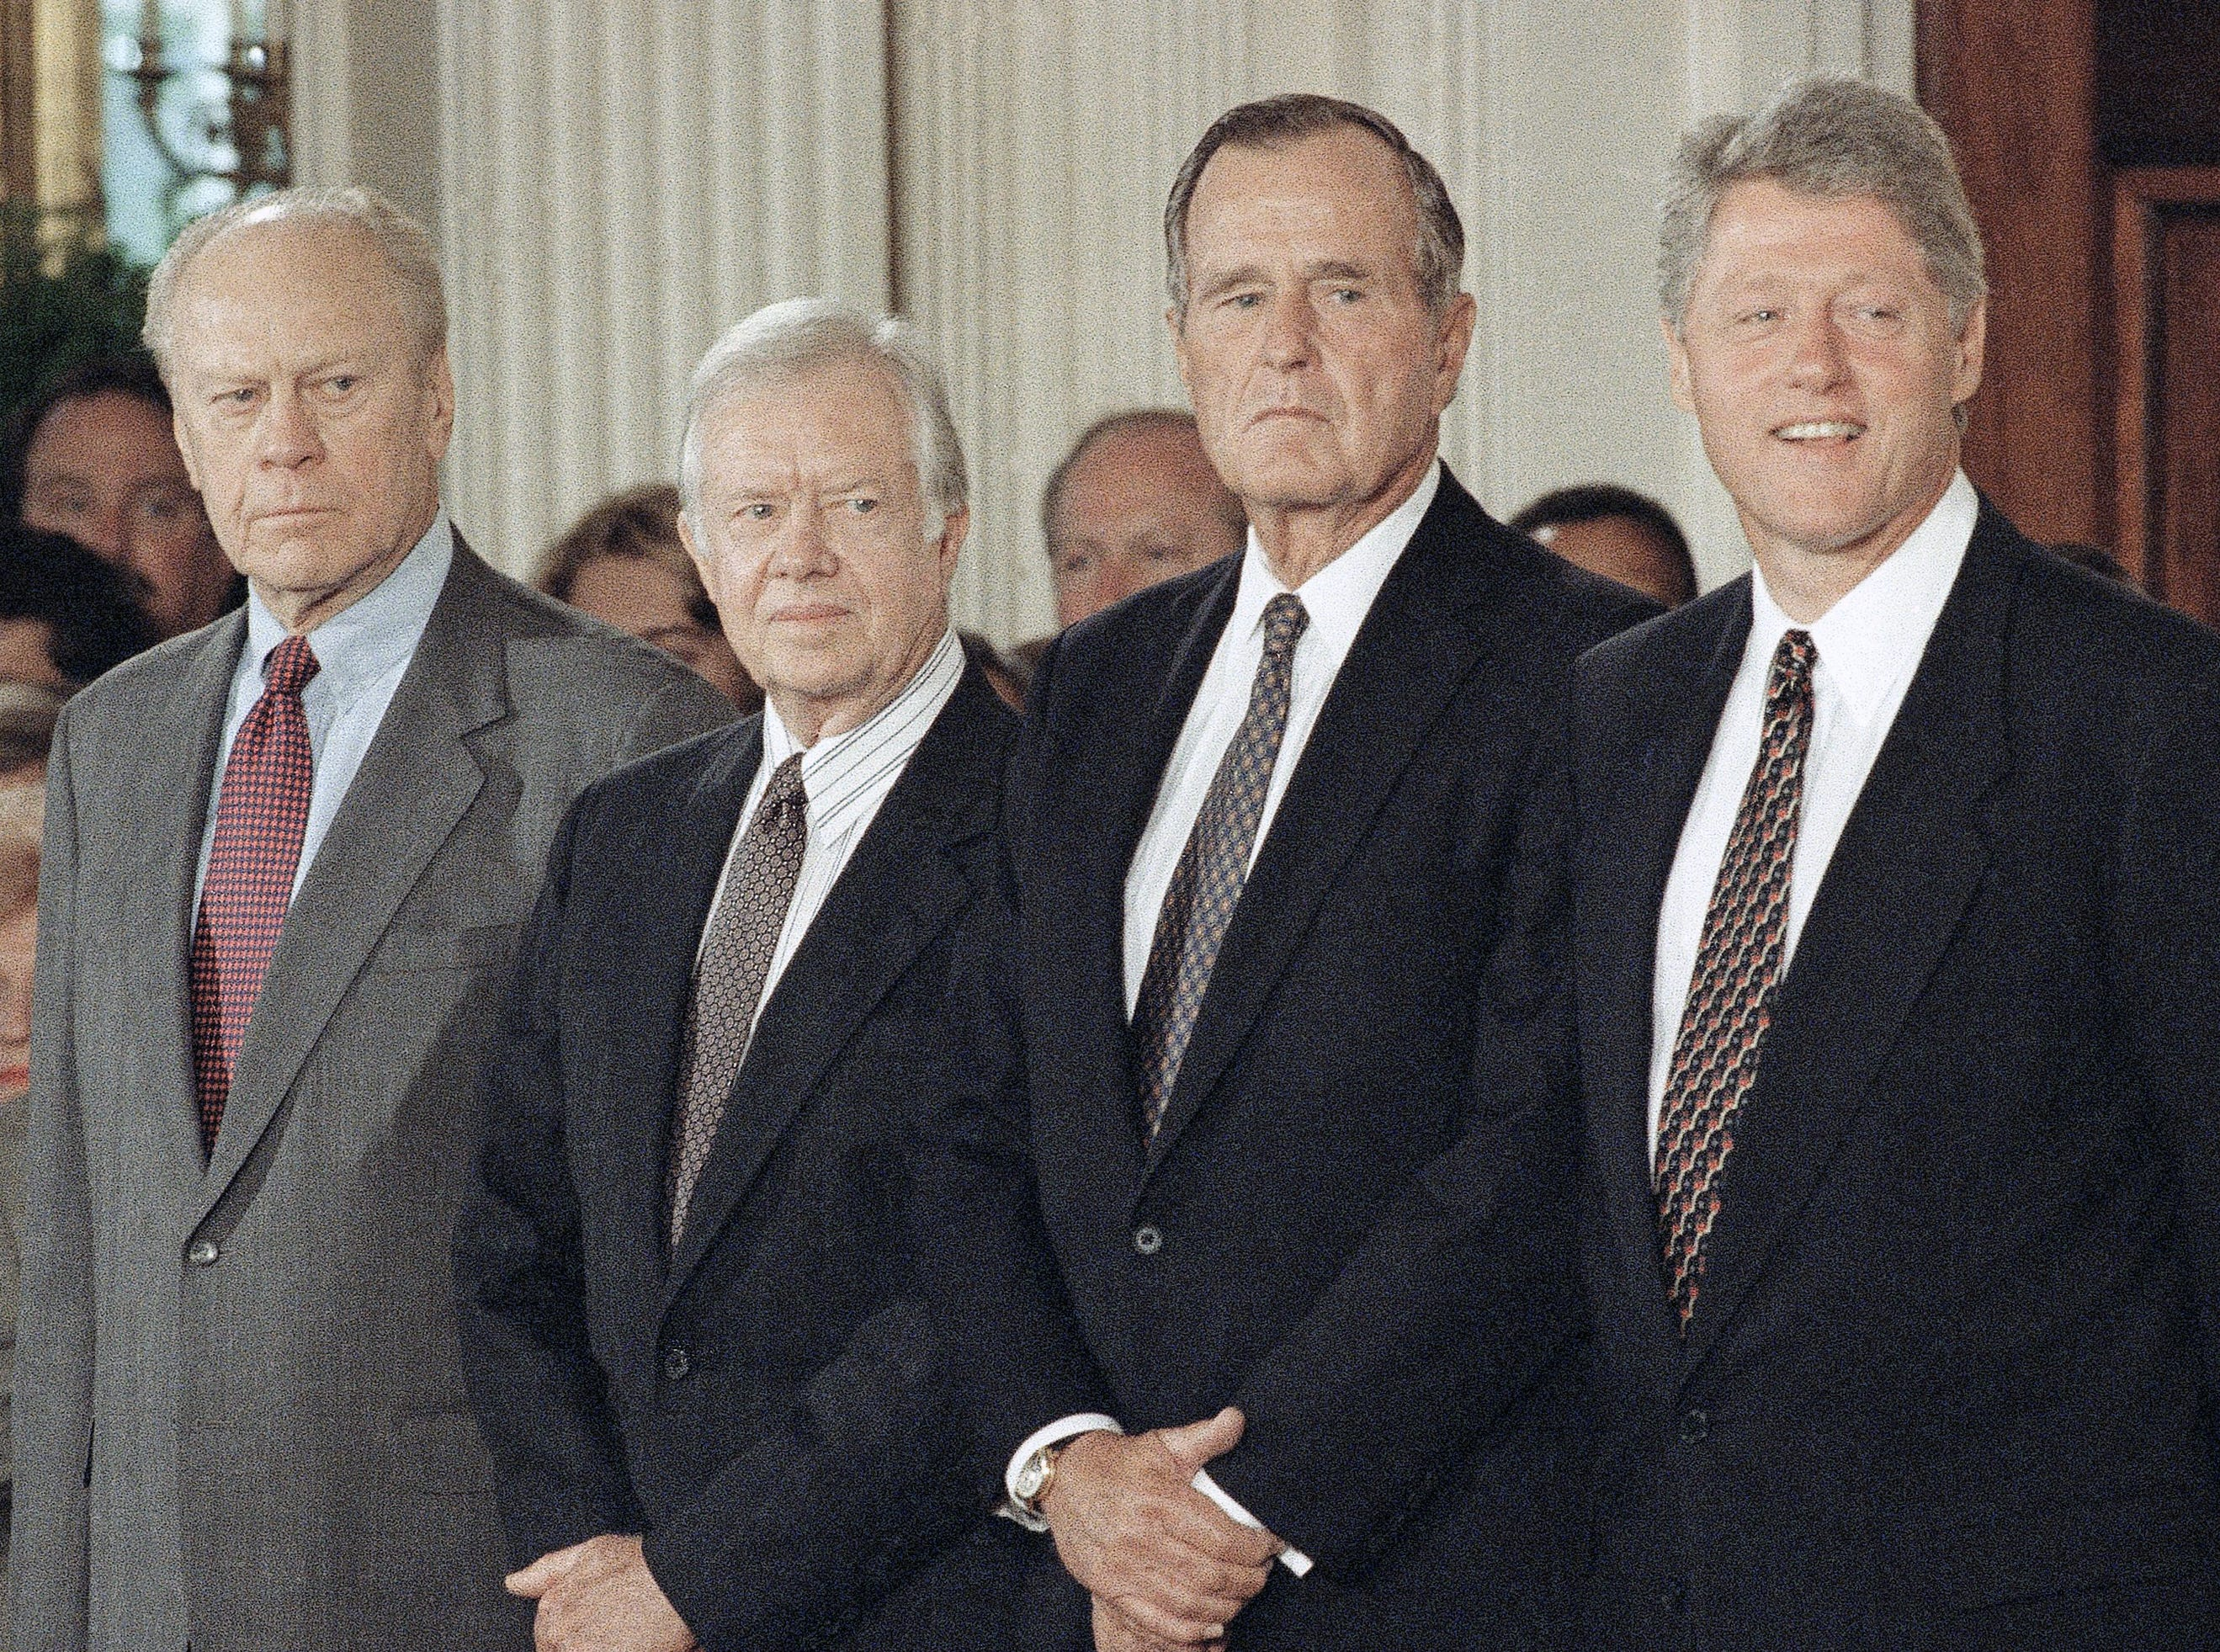 From left Gerald Ford, Jimmy Carter, George H.W. Bush and Bill Clinton pose for photographers during the signing ceremony for the North American Free Trade Agreement in Washington  Sept. 14, 1993. (AP Photo/Wilfredo Lee)